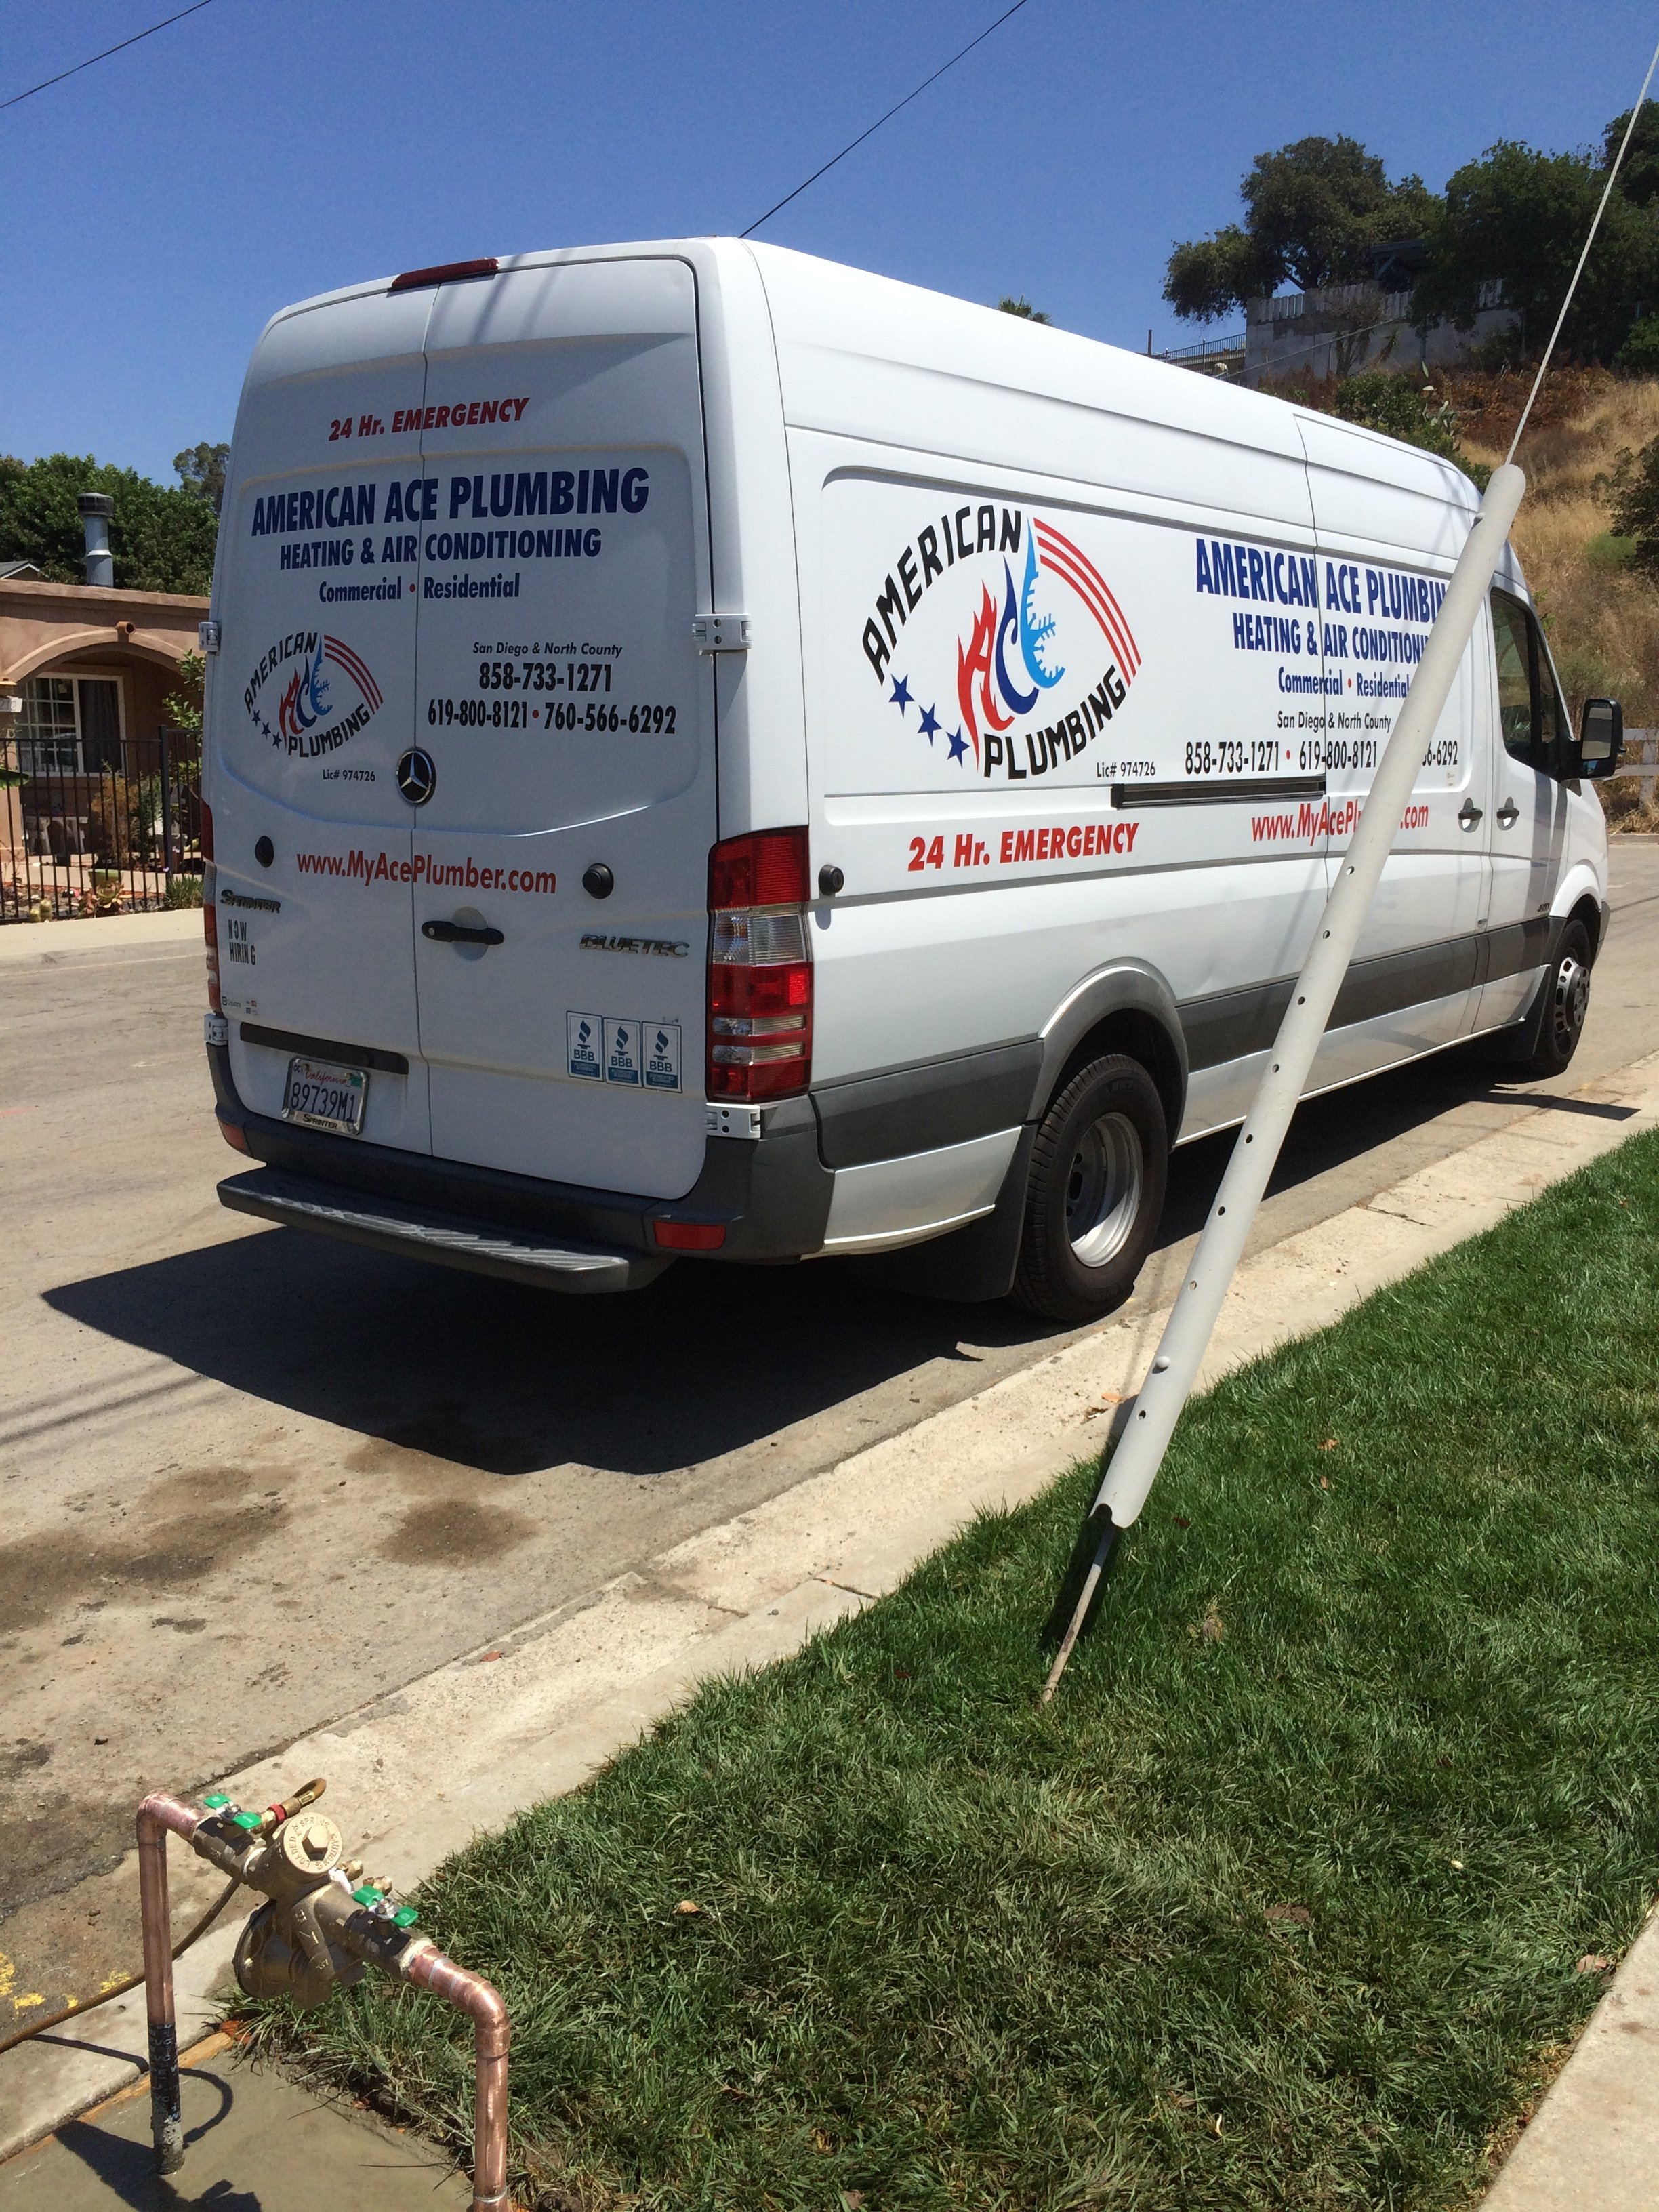 American ace plumbing heating and air conditioning in san for Santee business license